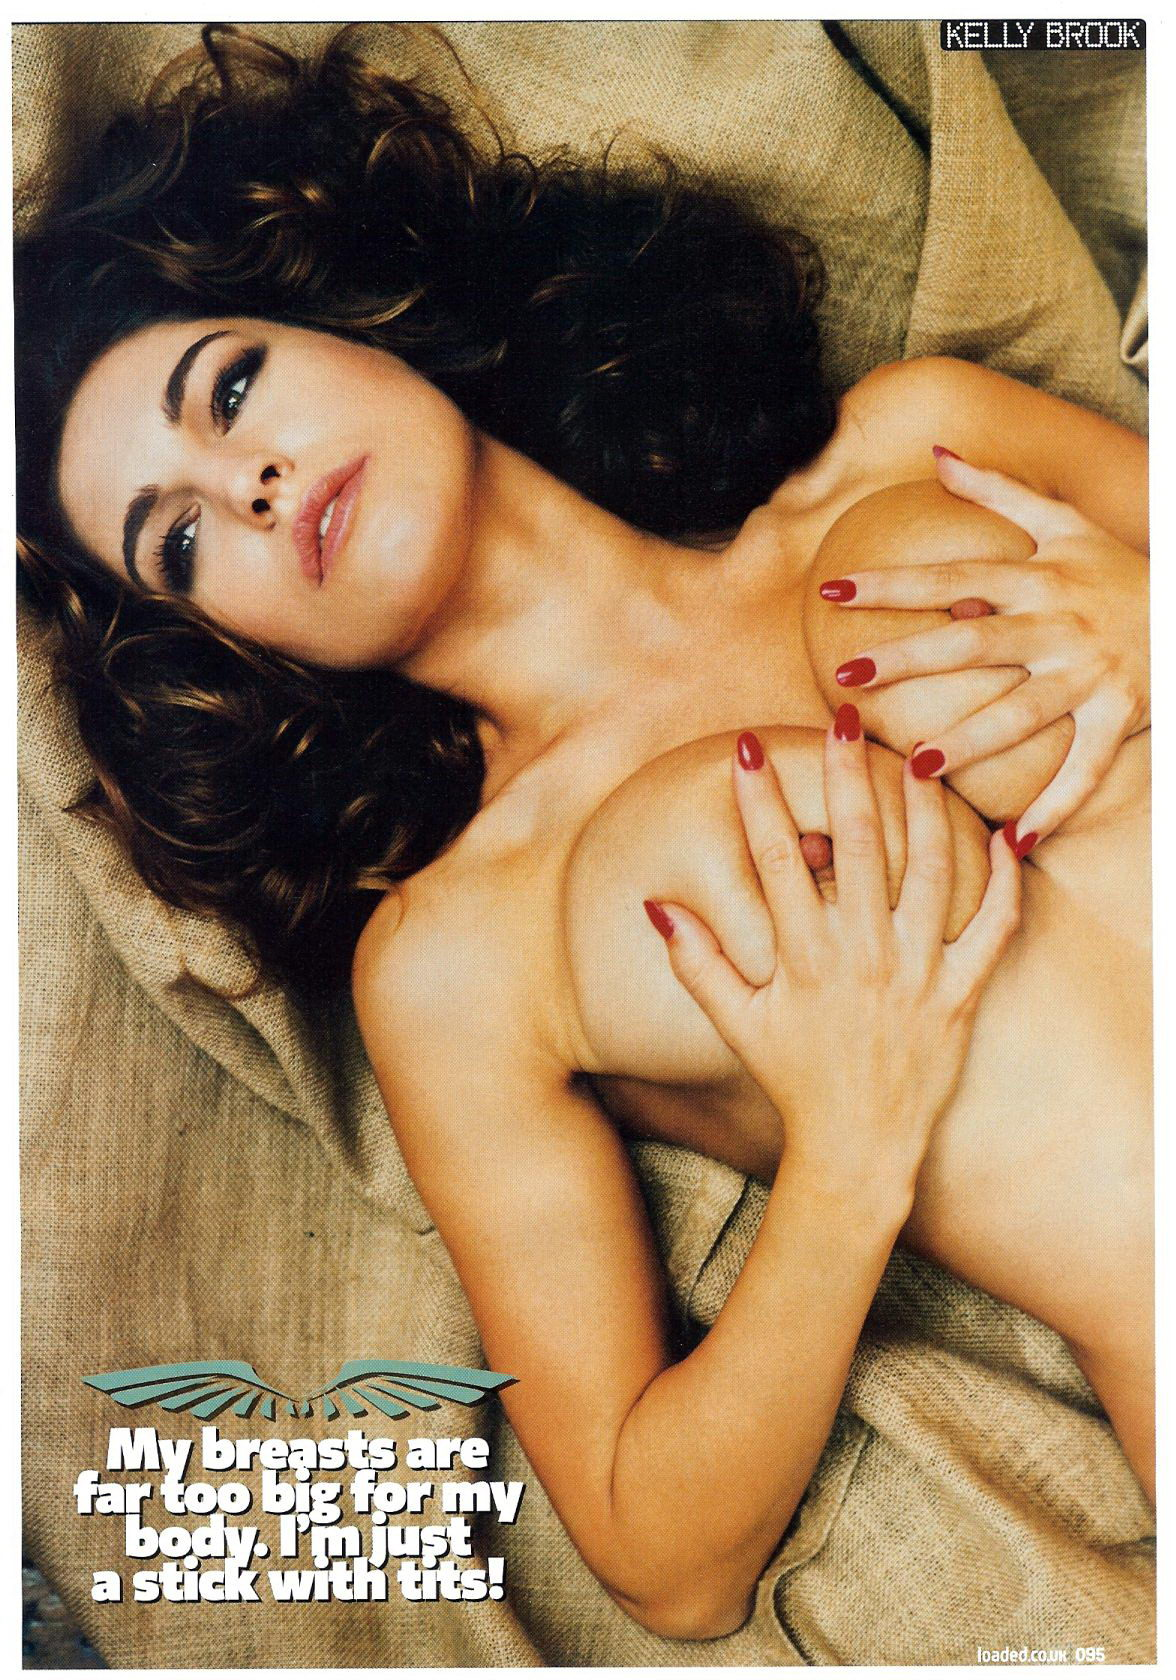 Kelly brook nude playboy — pic 10